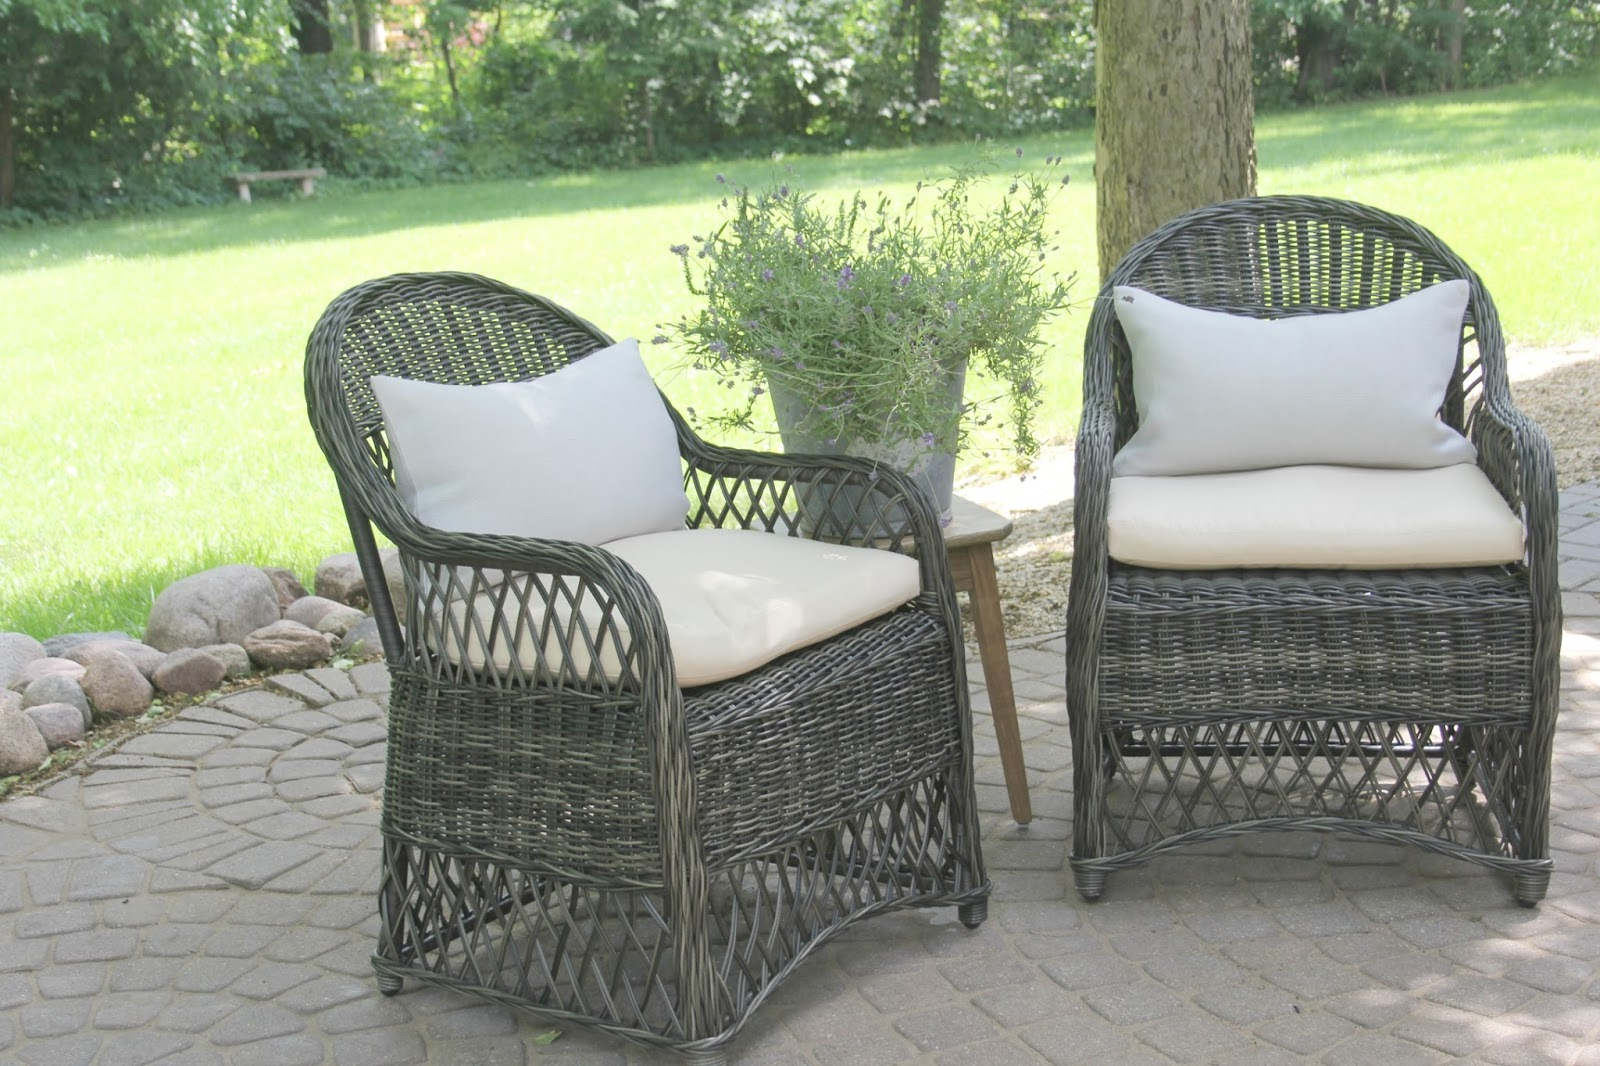 Gorgeous wicker Davies (Decor Market) chairs on patio - Hello Lovely Studio